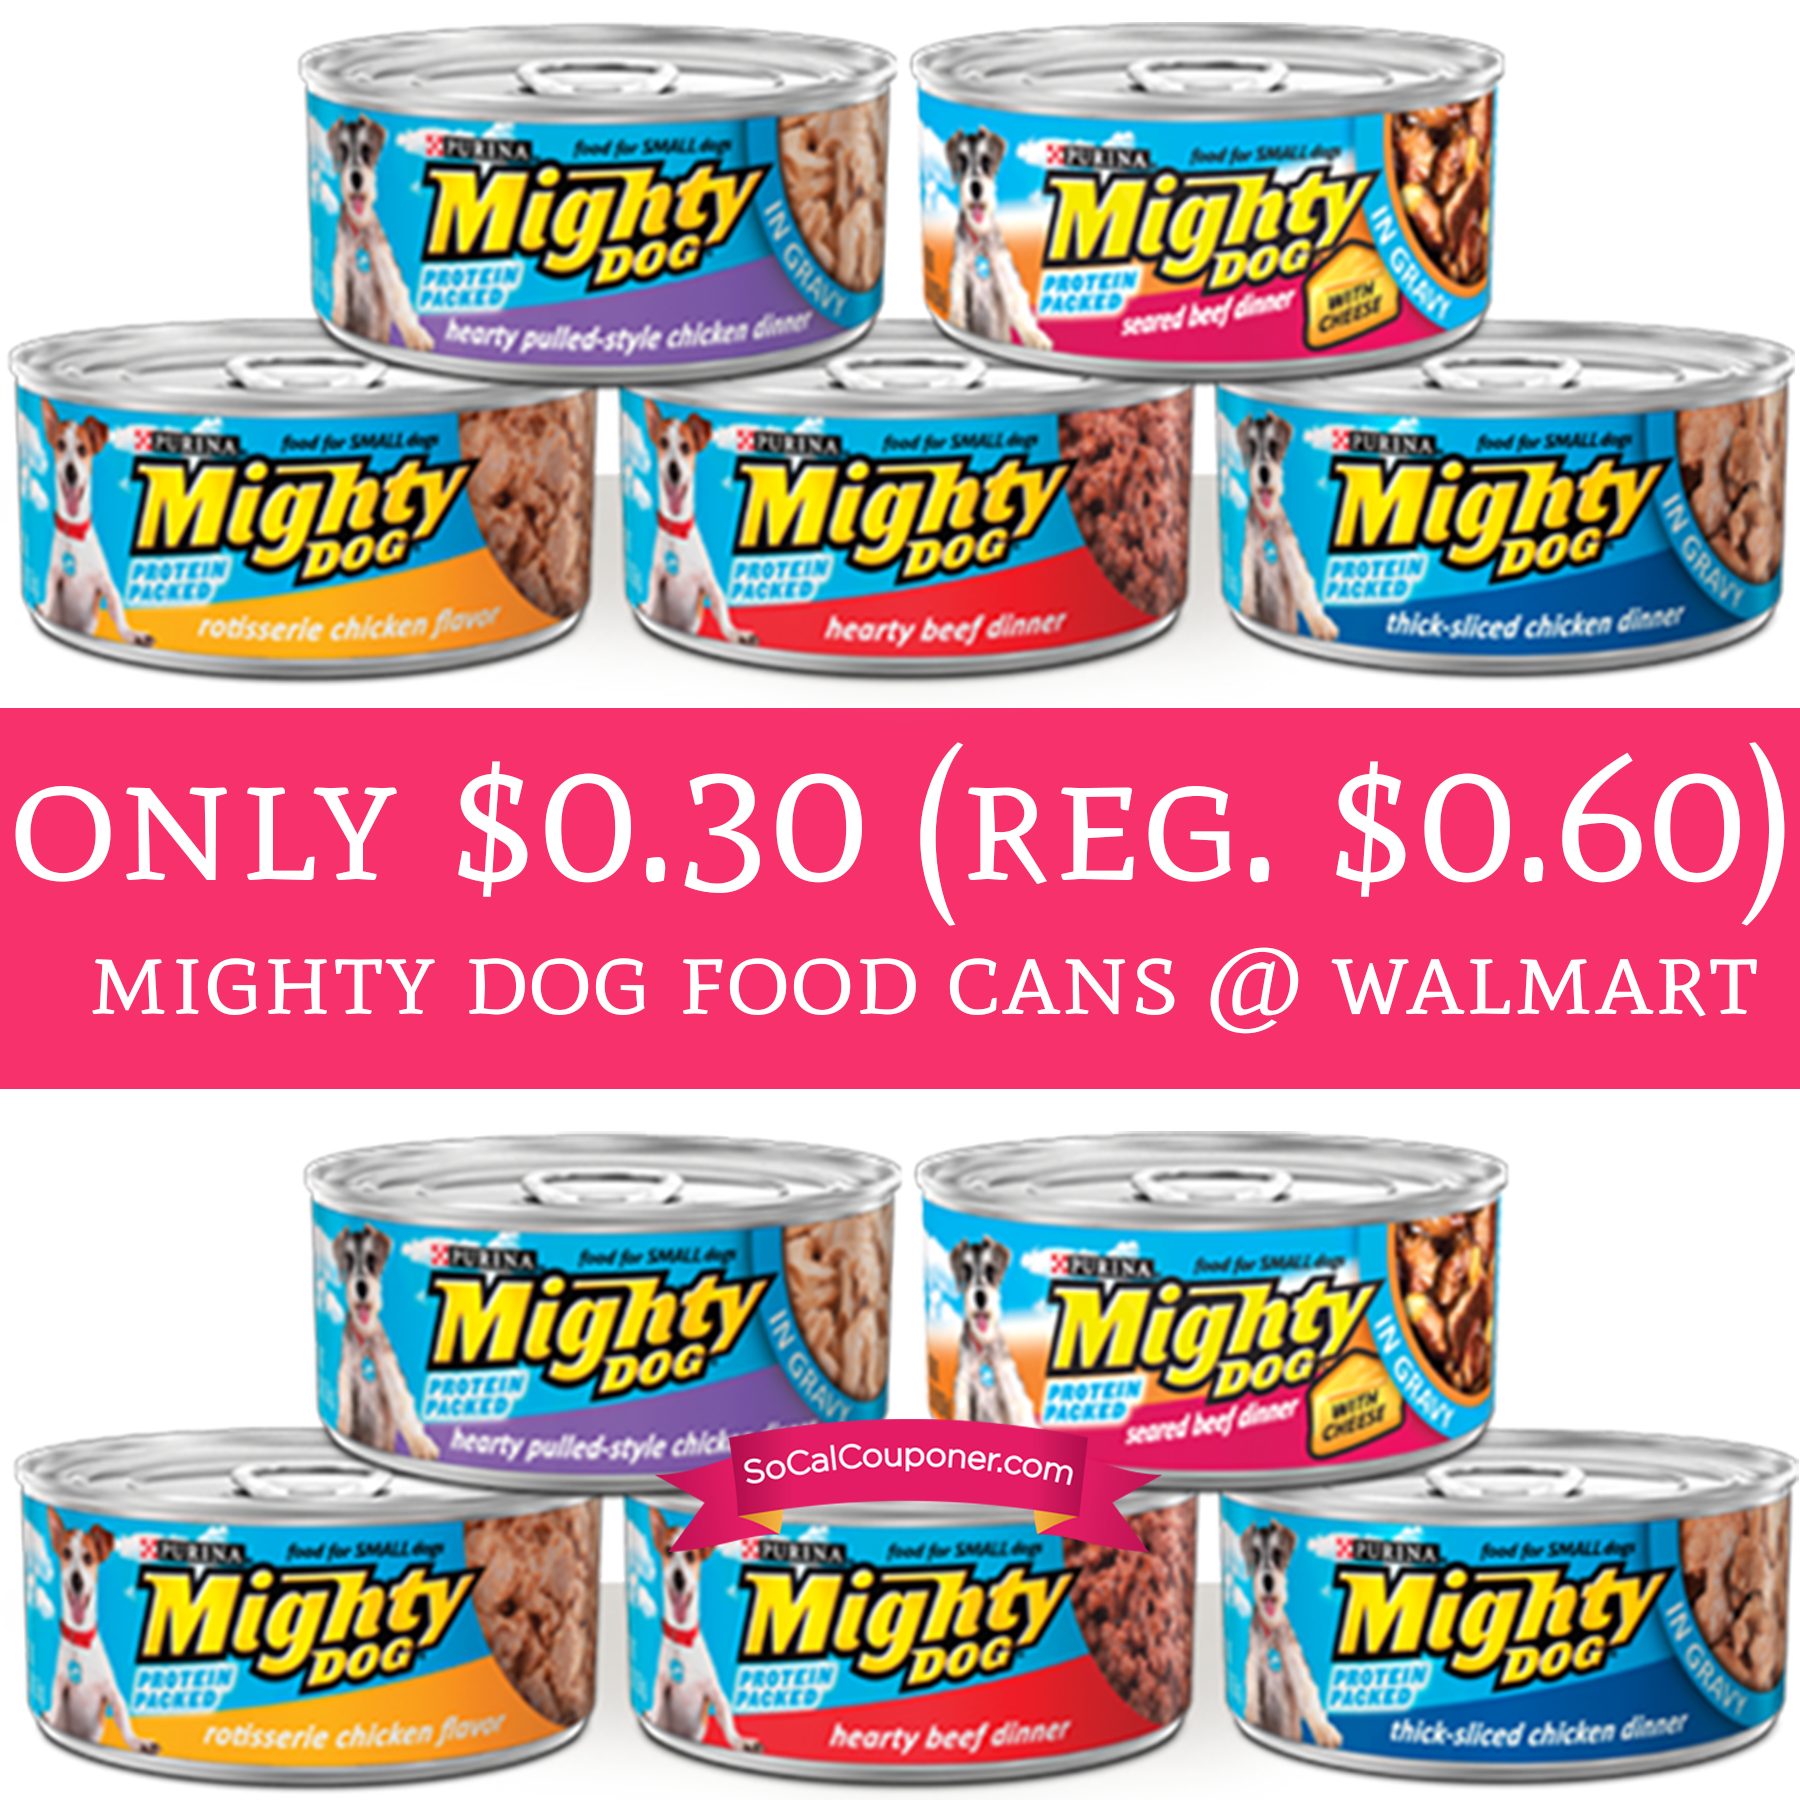 mighty dog printable coupons